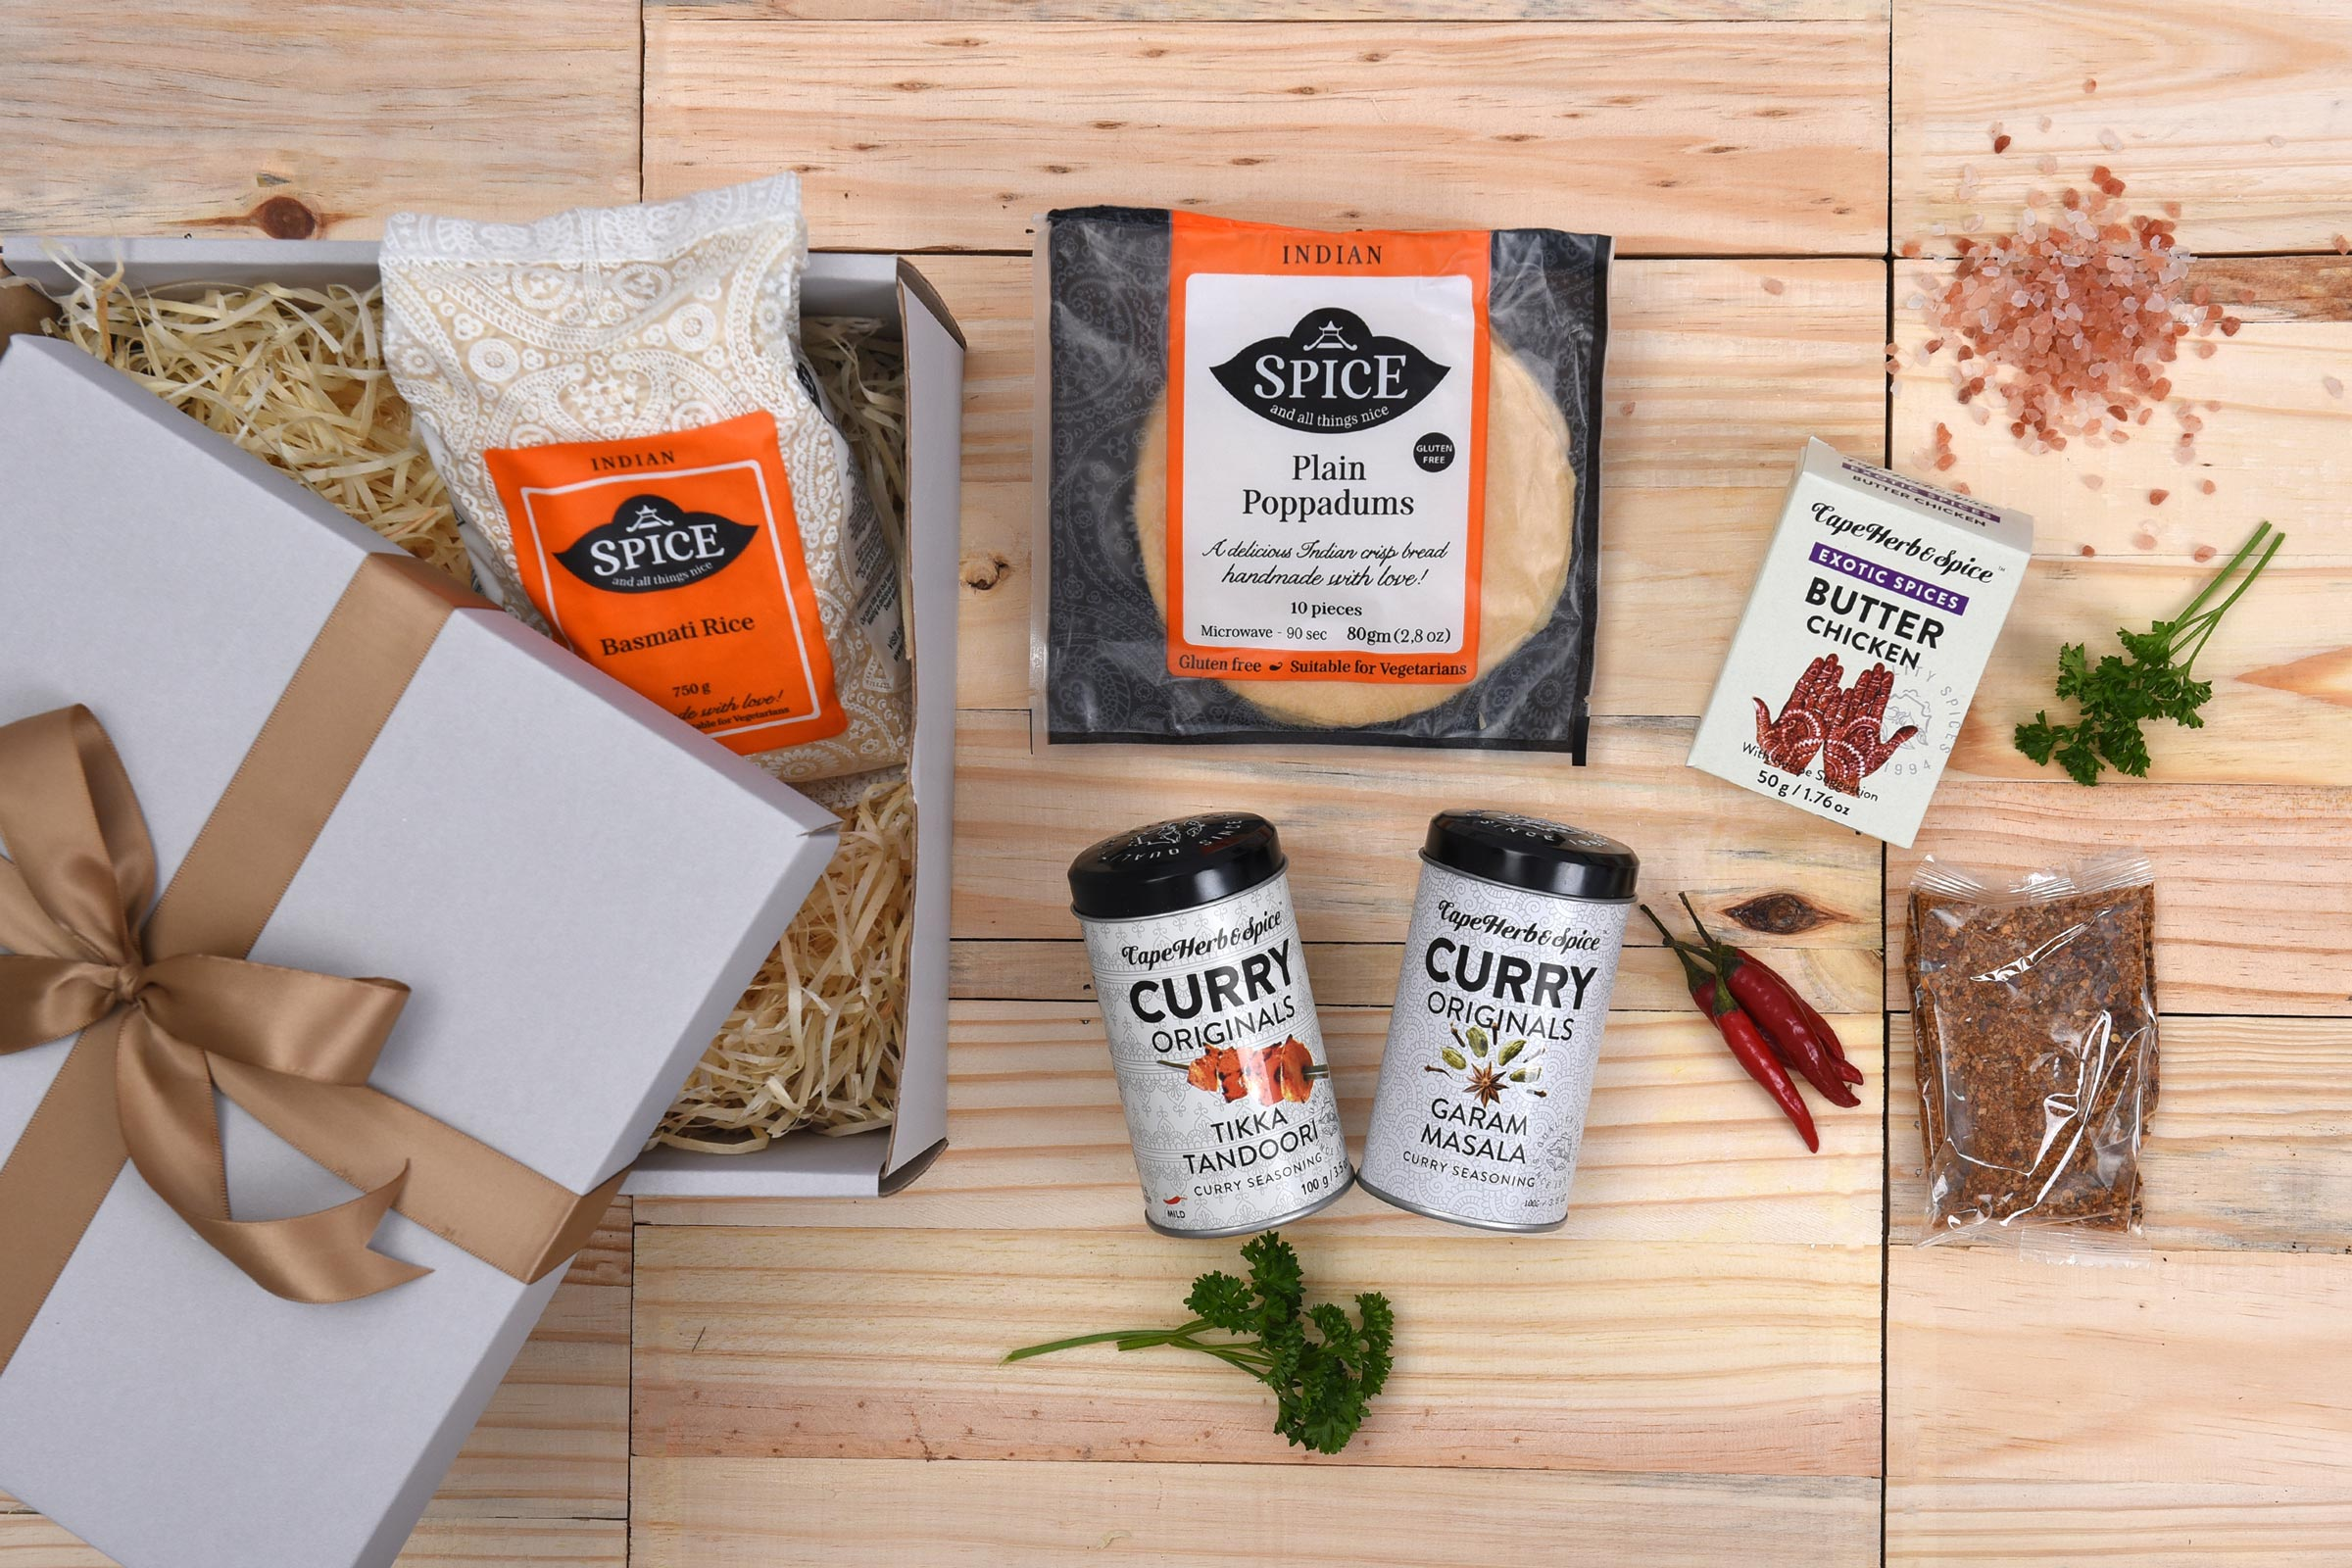 All Things Curry Spice Rice Cooking Hamper Hamper World